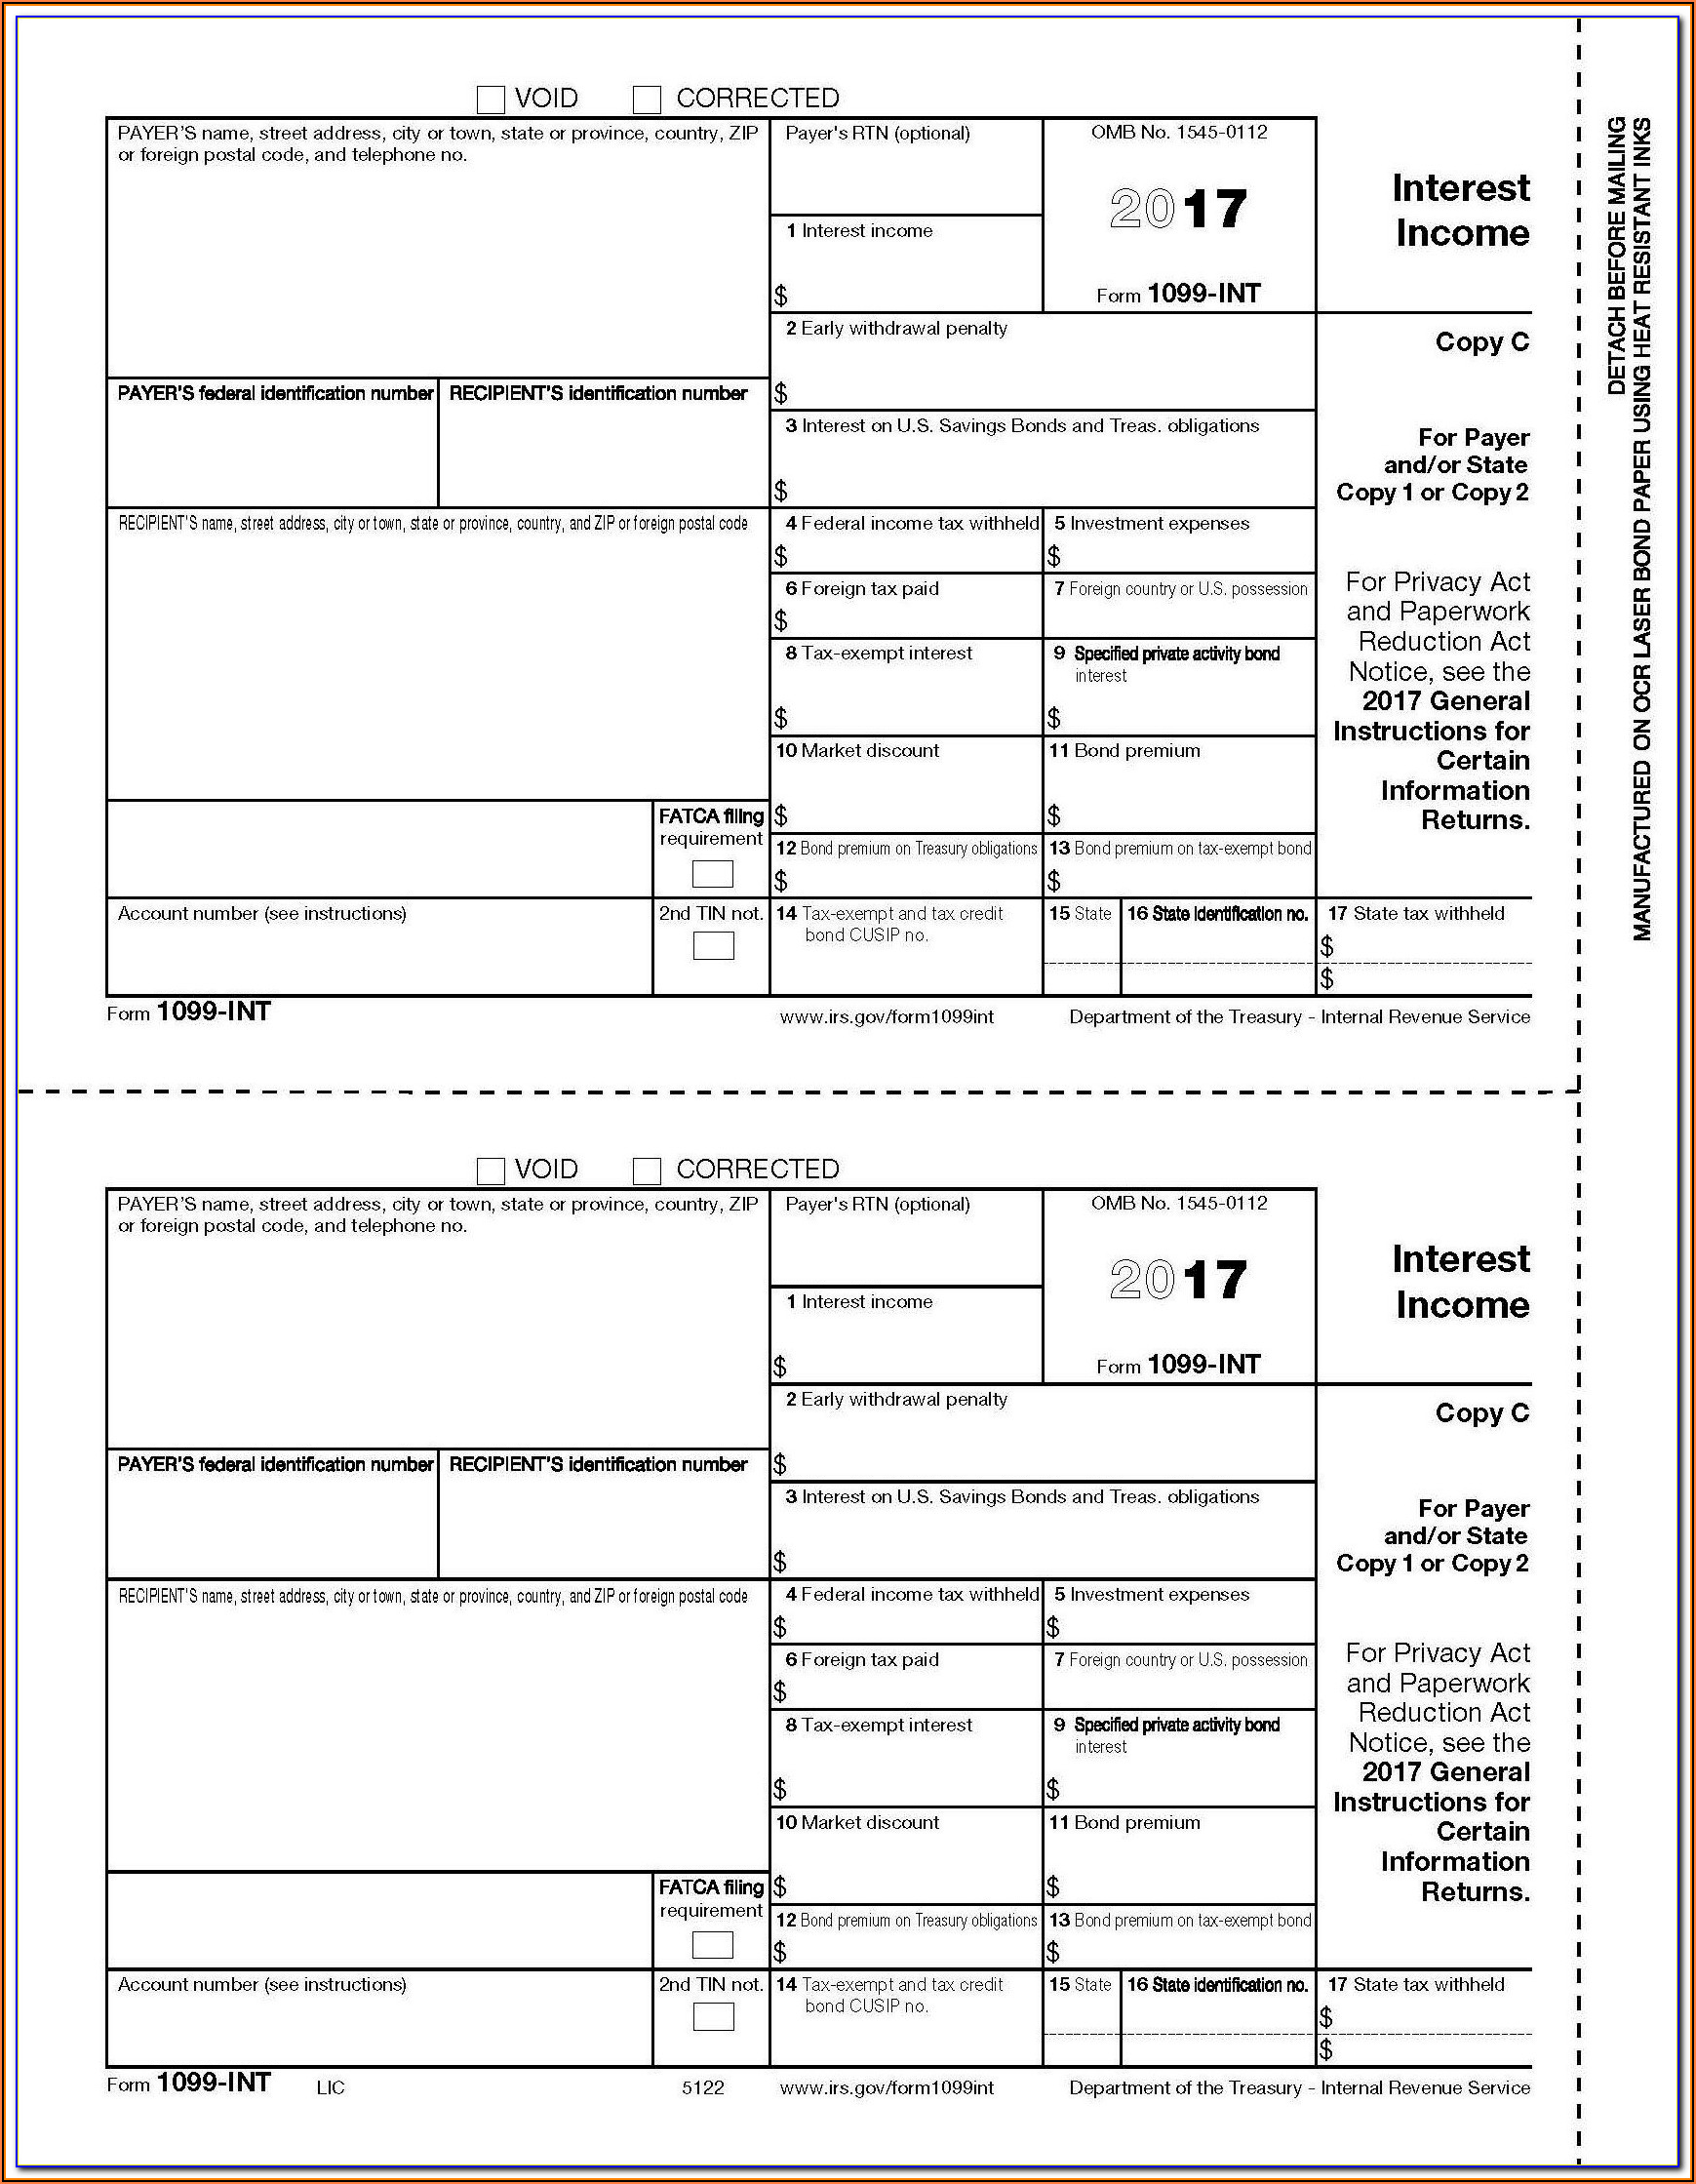 Irs.gov Forms 1099 Int